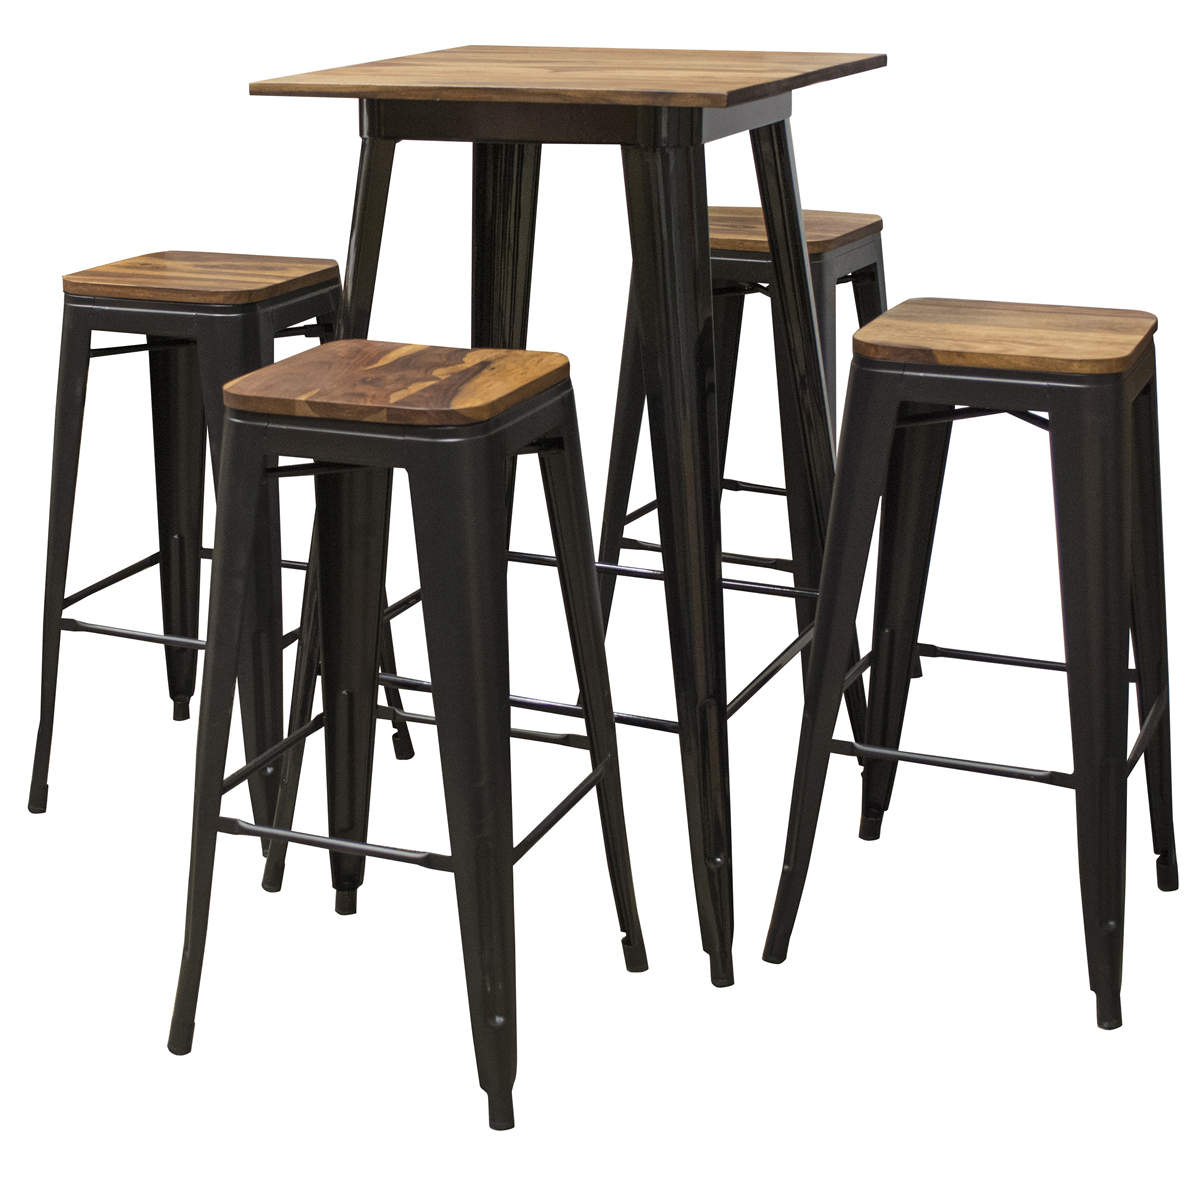 5 Piece Pub Table Set with Rosewood Top and Metal Legs, Seats 4